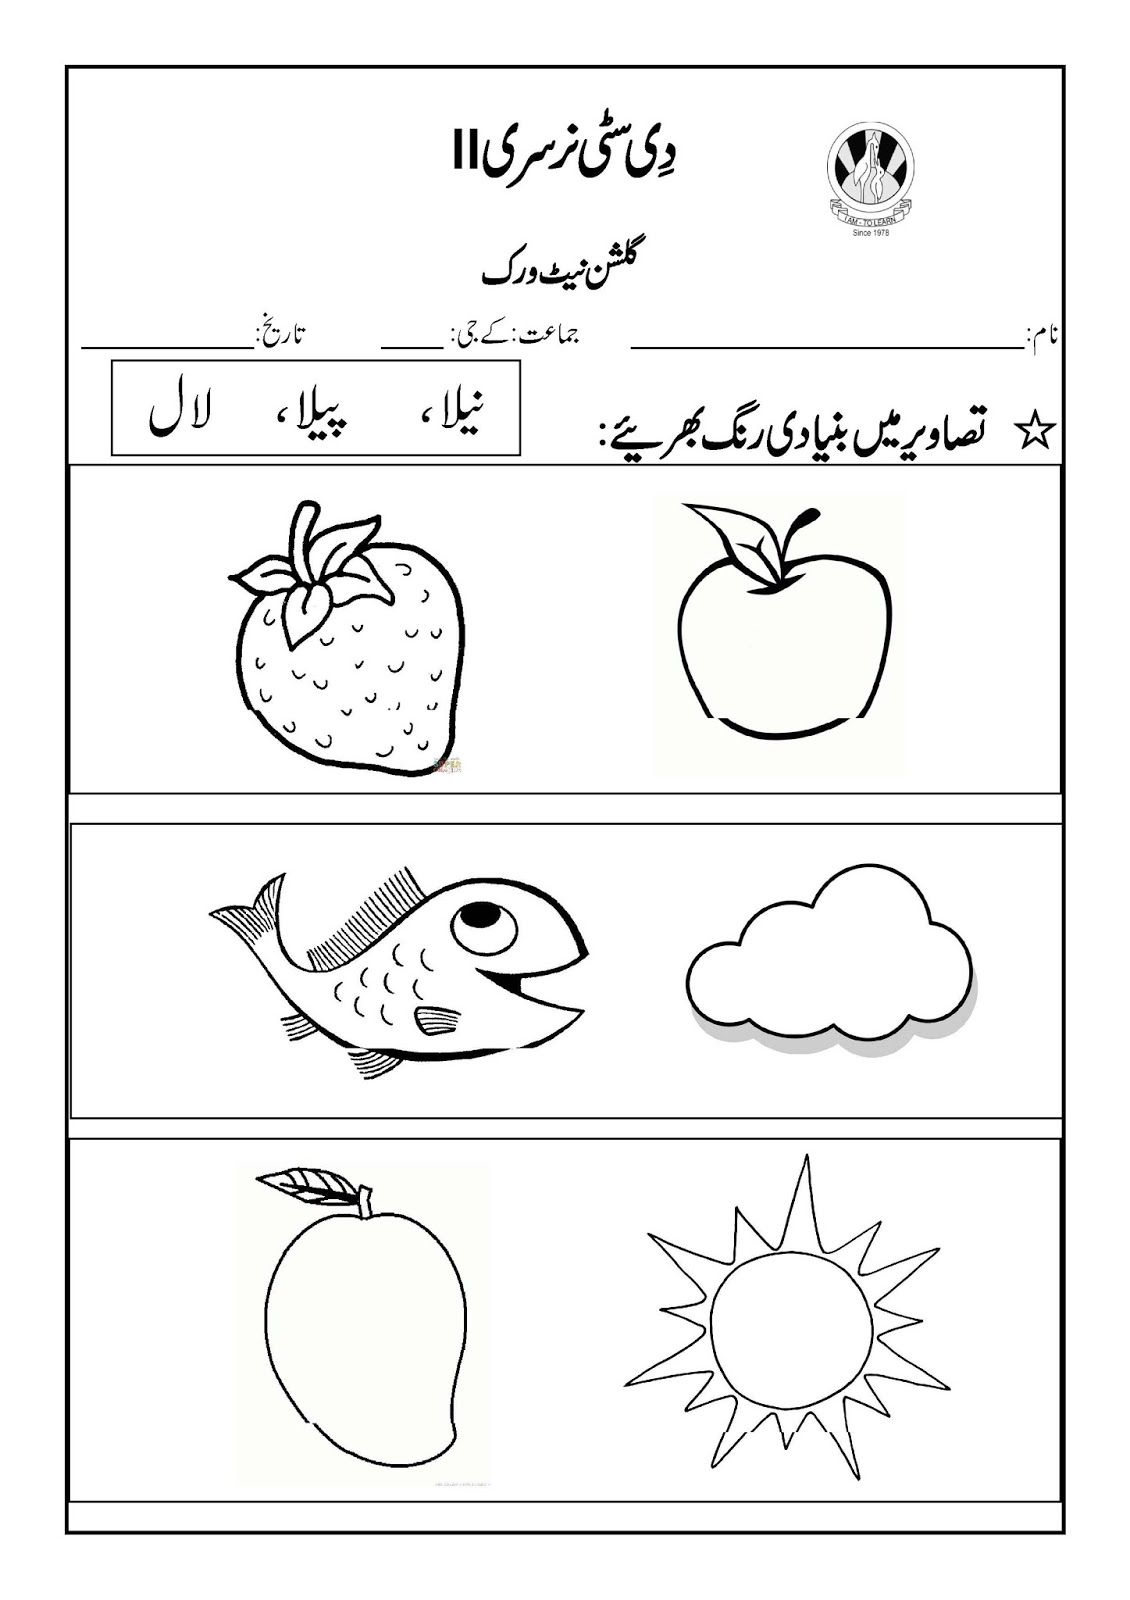 Worksheets For Kindergarten In Urdu